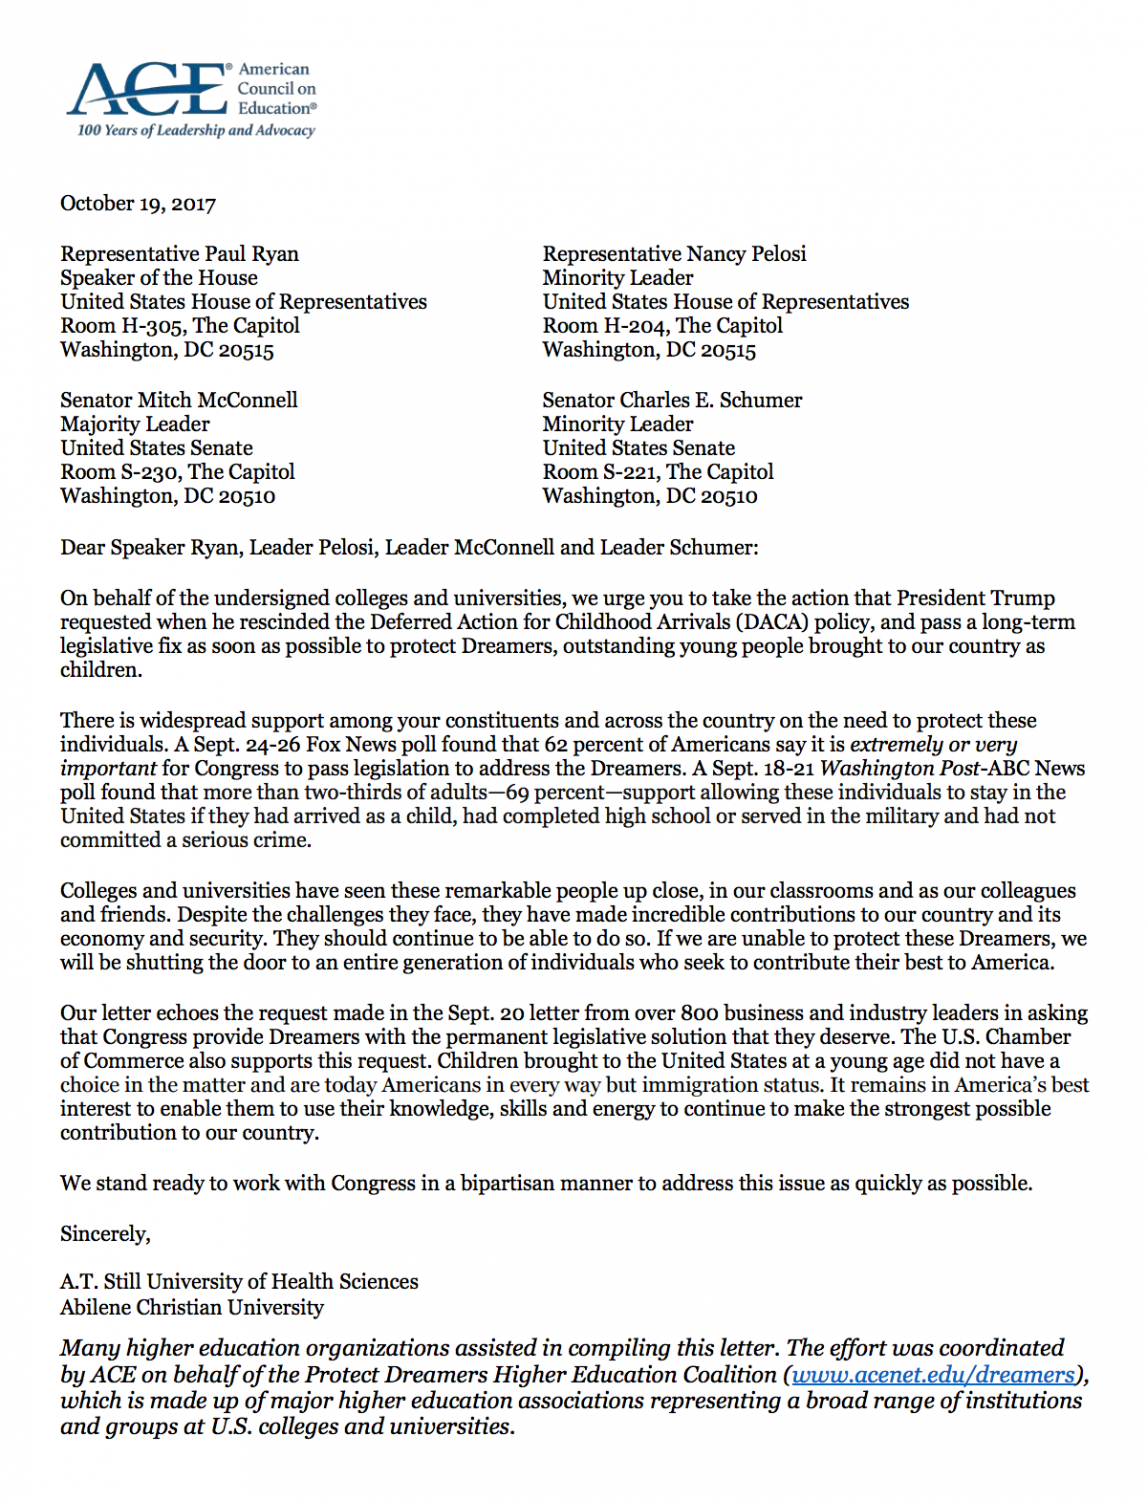 On Oct. 19, 800 colleges and universities around the U.S., including NYU, signed a letter to the House of Representatives urging them to protect immigrants while DACA is in the process of a repeal.